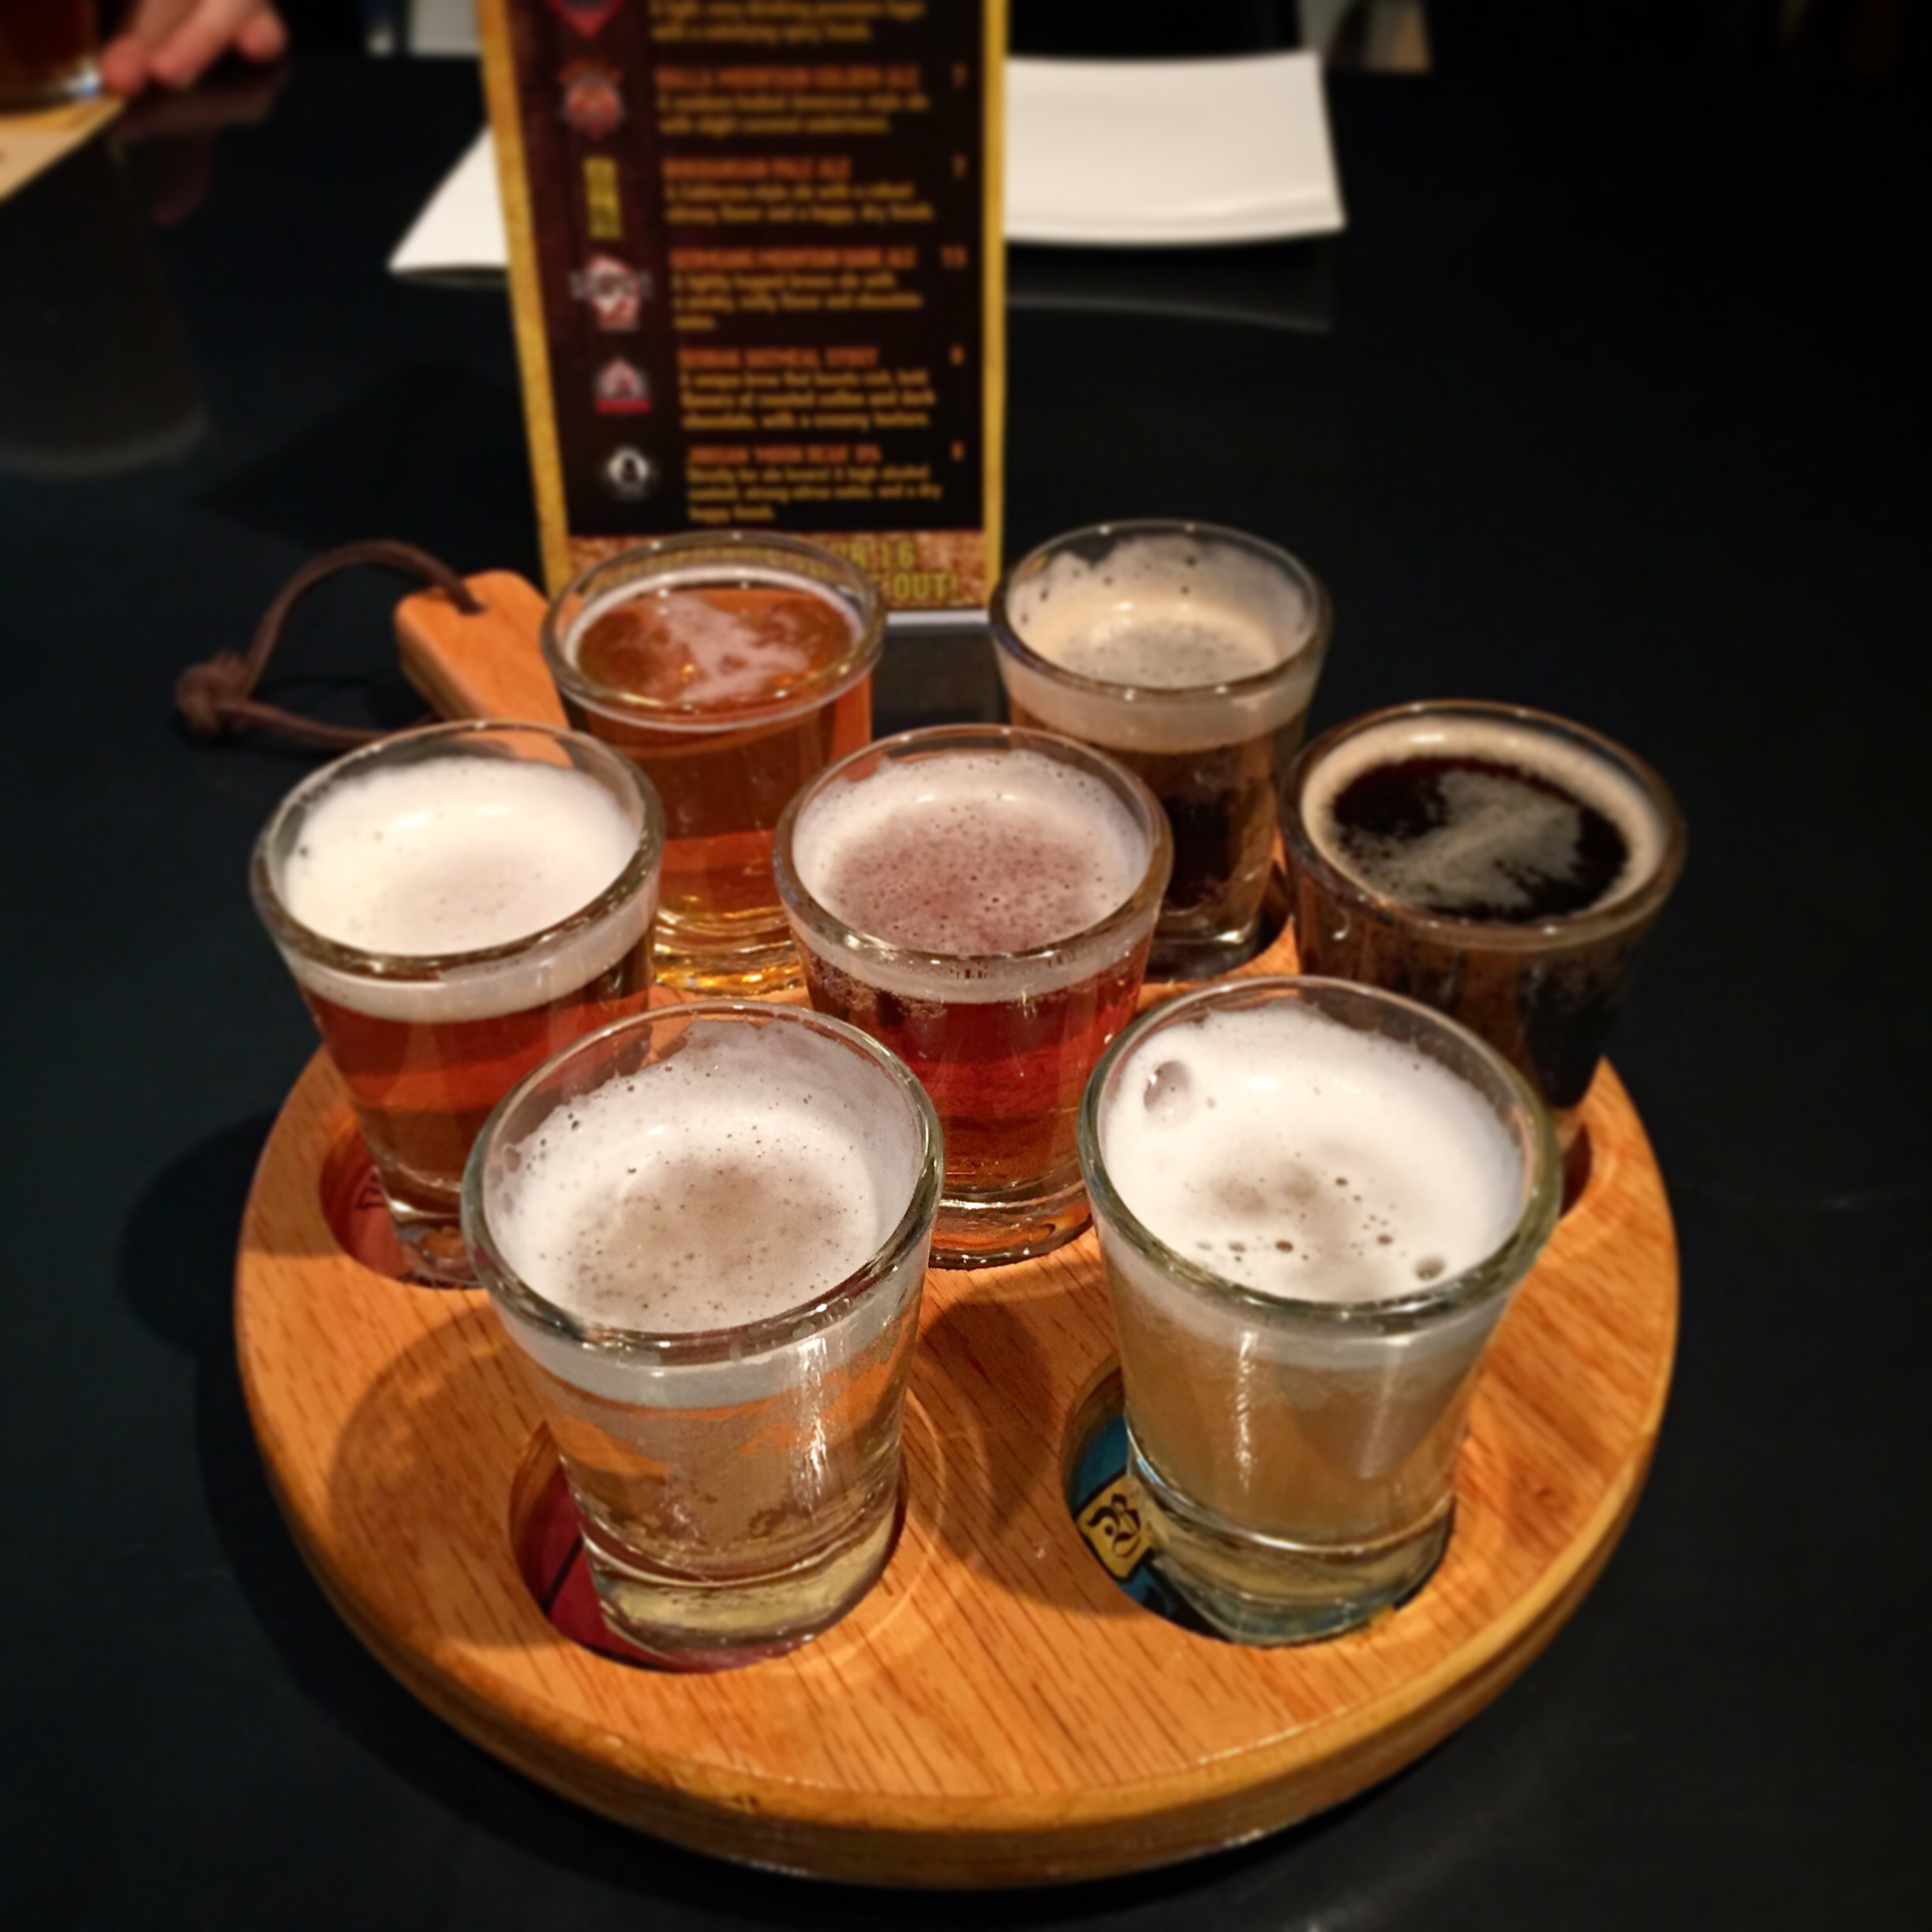 """Get the """"Sample Paddle"""" - 12 000won, which includes all 7 of the local draft beers to taste. Baekdusan Hefeweizen, Jirsan Moon Bear IPA, Bukhansan Pale Ale, Geumgangsan Mountain Dark Ale, Namsan Pure Pilsner, Halla Mountain Golden Ale andSeorak Mountain Stout.  My favourite is the Hallla Mountain Golden Ale - it tastes sort of like a Honey Lager. It's creamy withslight caramel tones. The sampler is a great option if you're not sure what kind of beer you like and want to taste them all. If you know your beer preferences already, ask for a suggestion from the server as they will be able to direct you to a great light, dark or bitter beer choice!"""